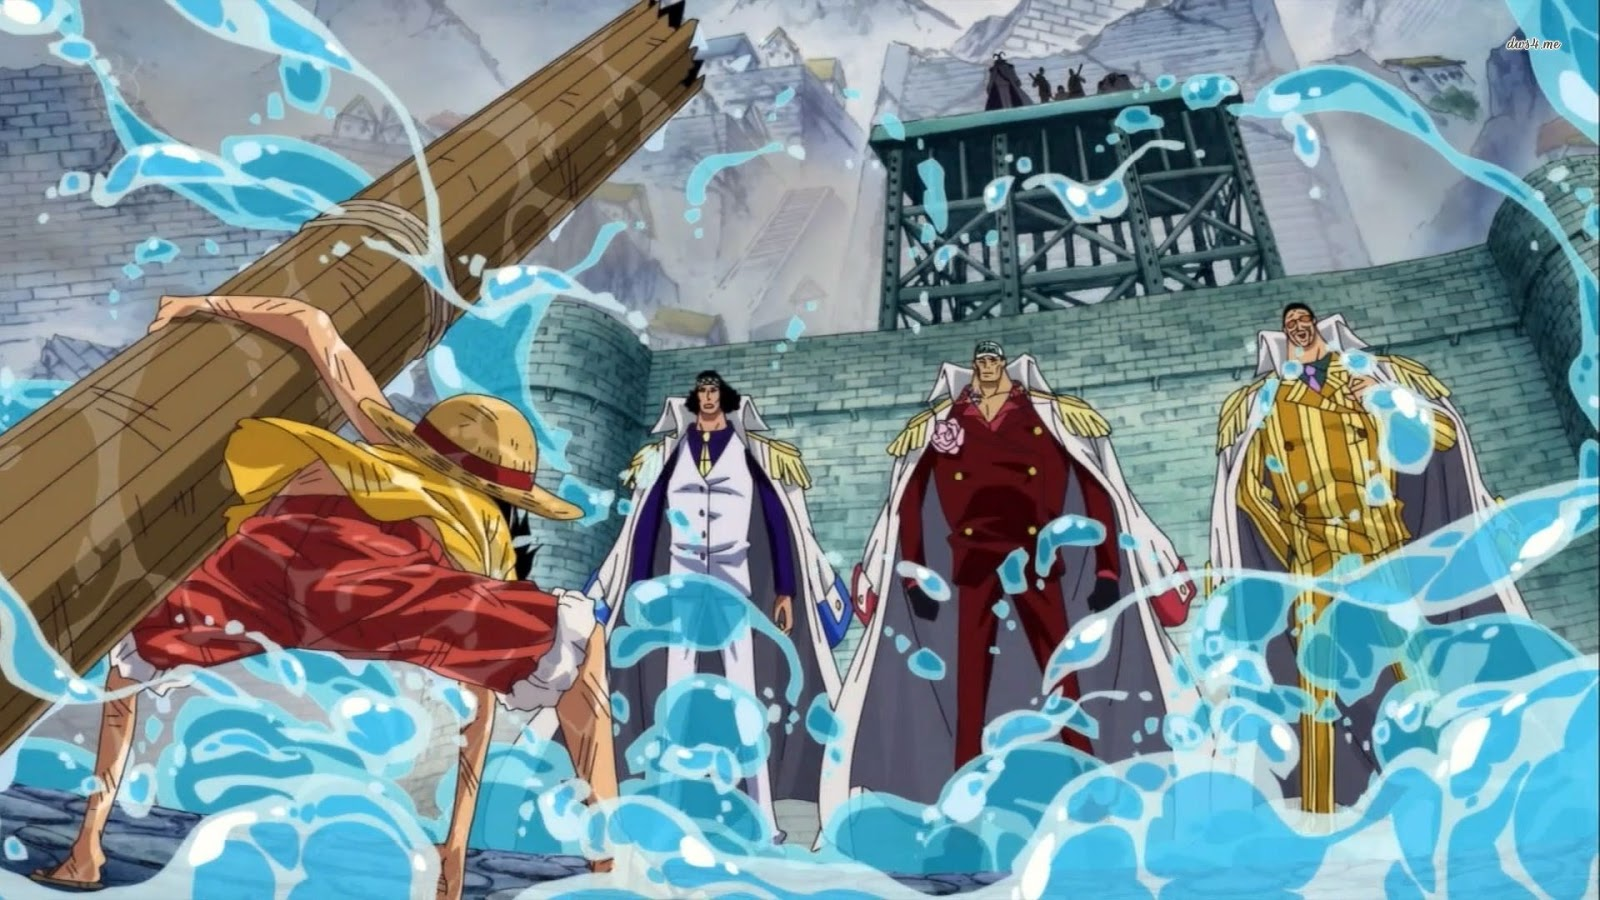 One Piece Marine Ford War Luffy Kuzan Akainu Kizaru Anime HD Wallpaper 1600x900